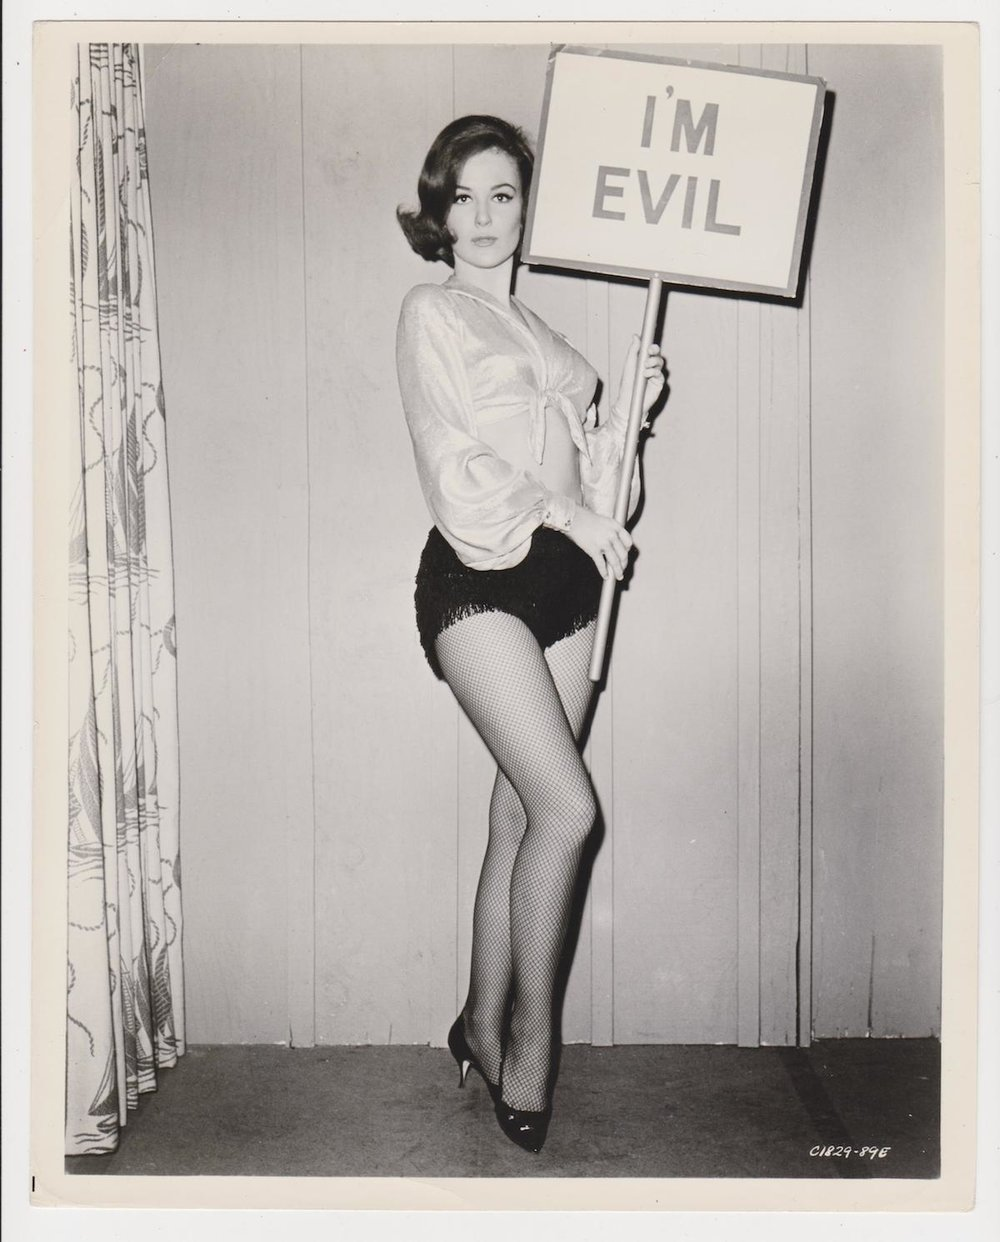 I'm Evil! Vintage photos of women and signs.